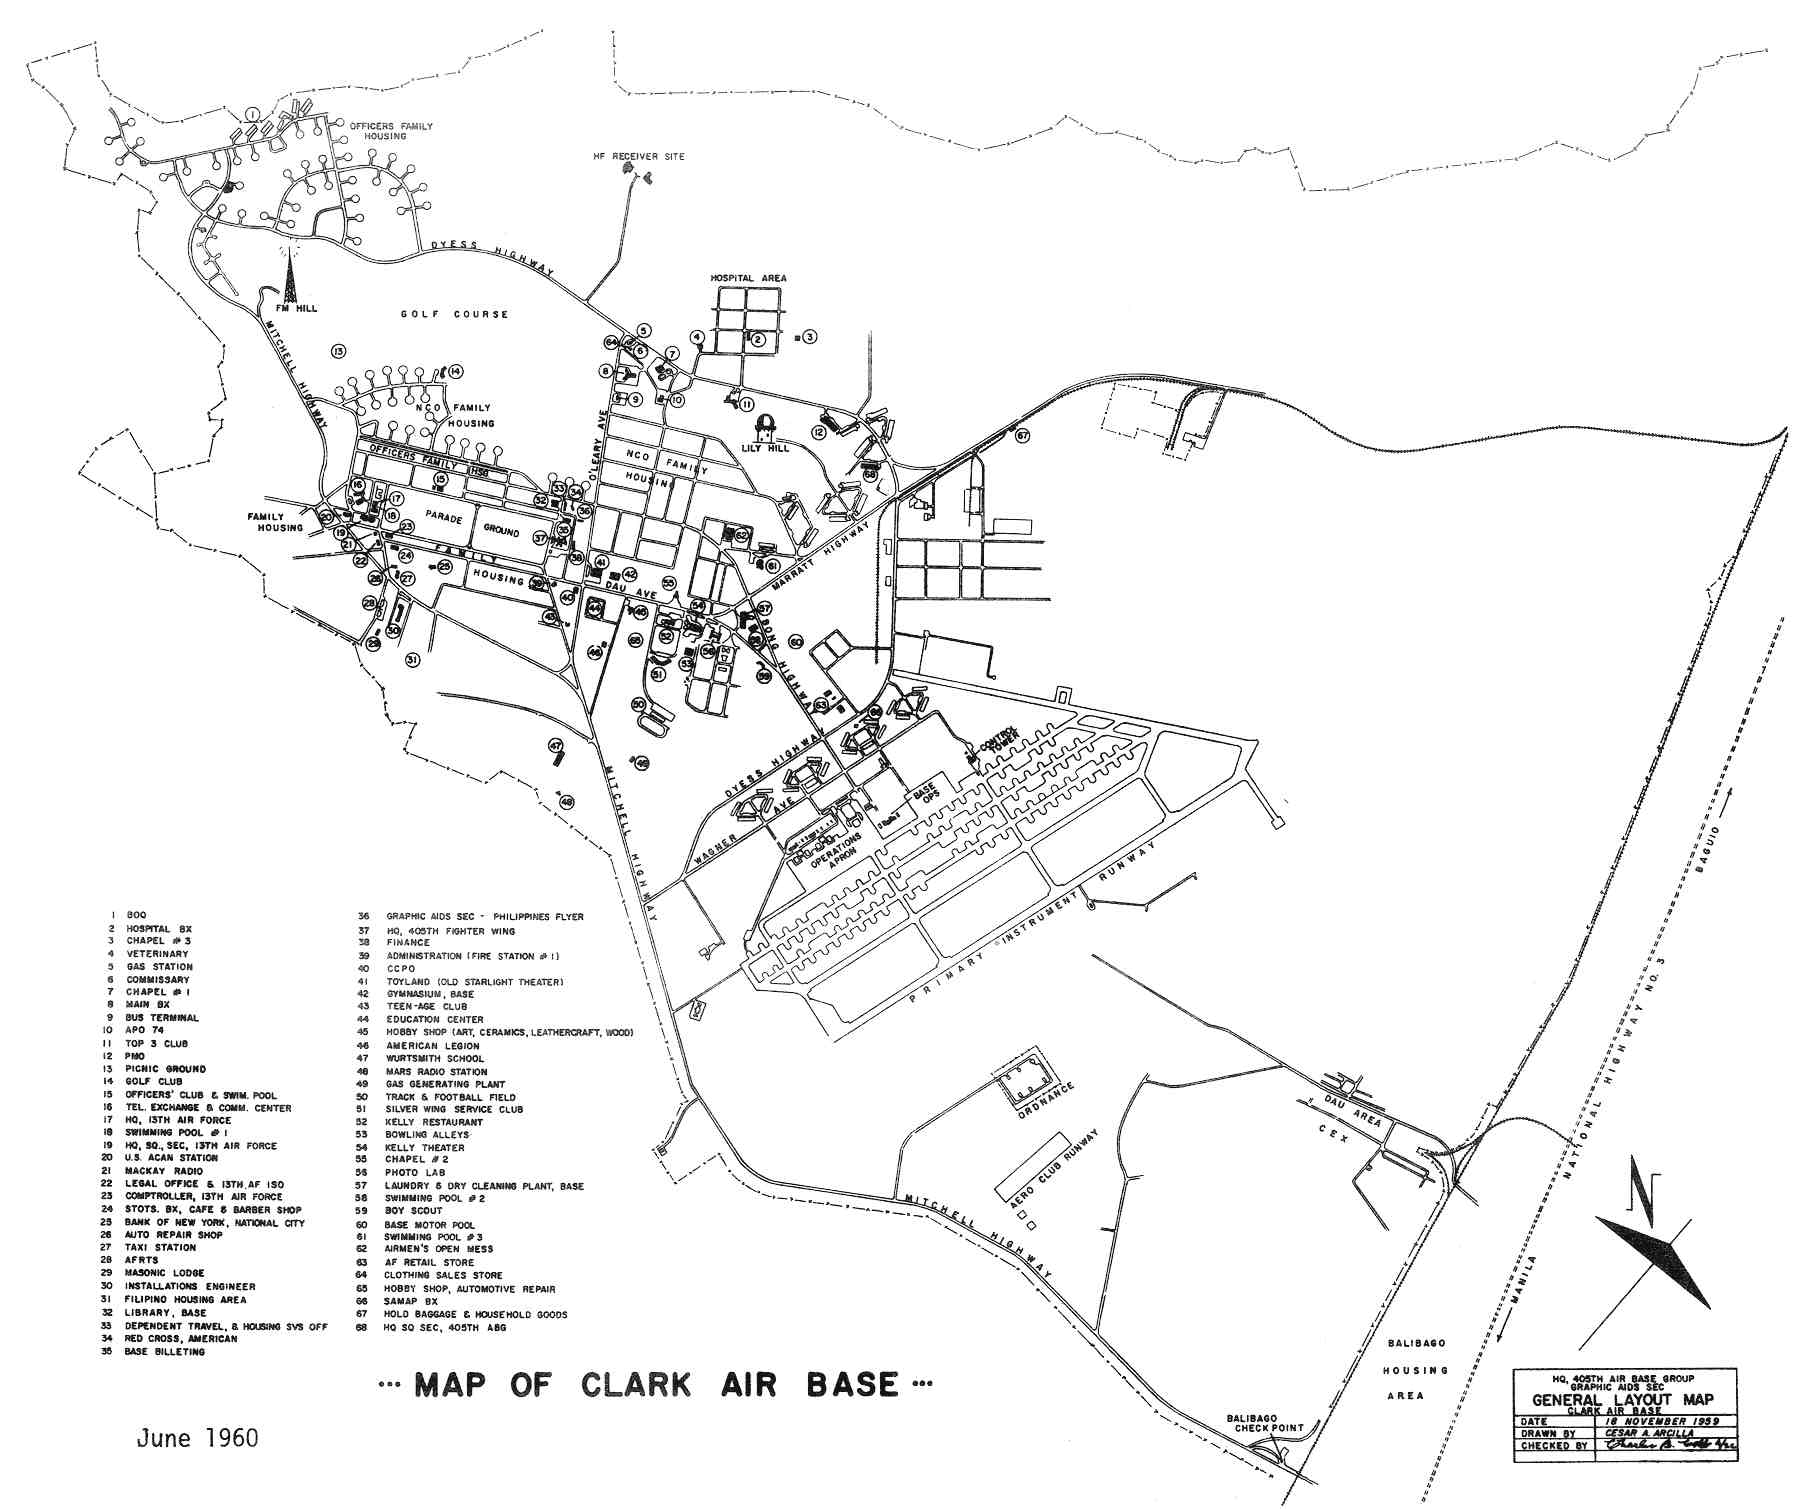 Philippines Clark Air Base Maps Charts And Blueprints